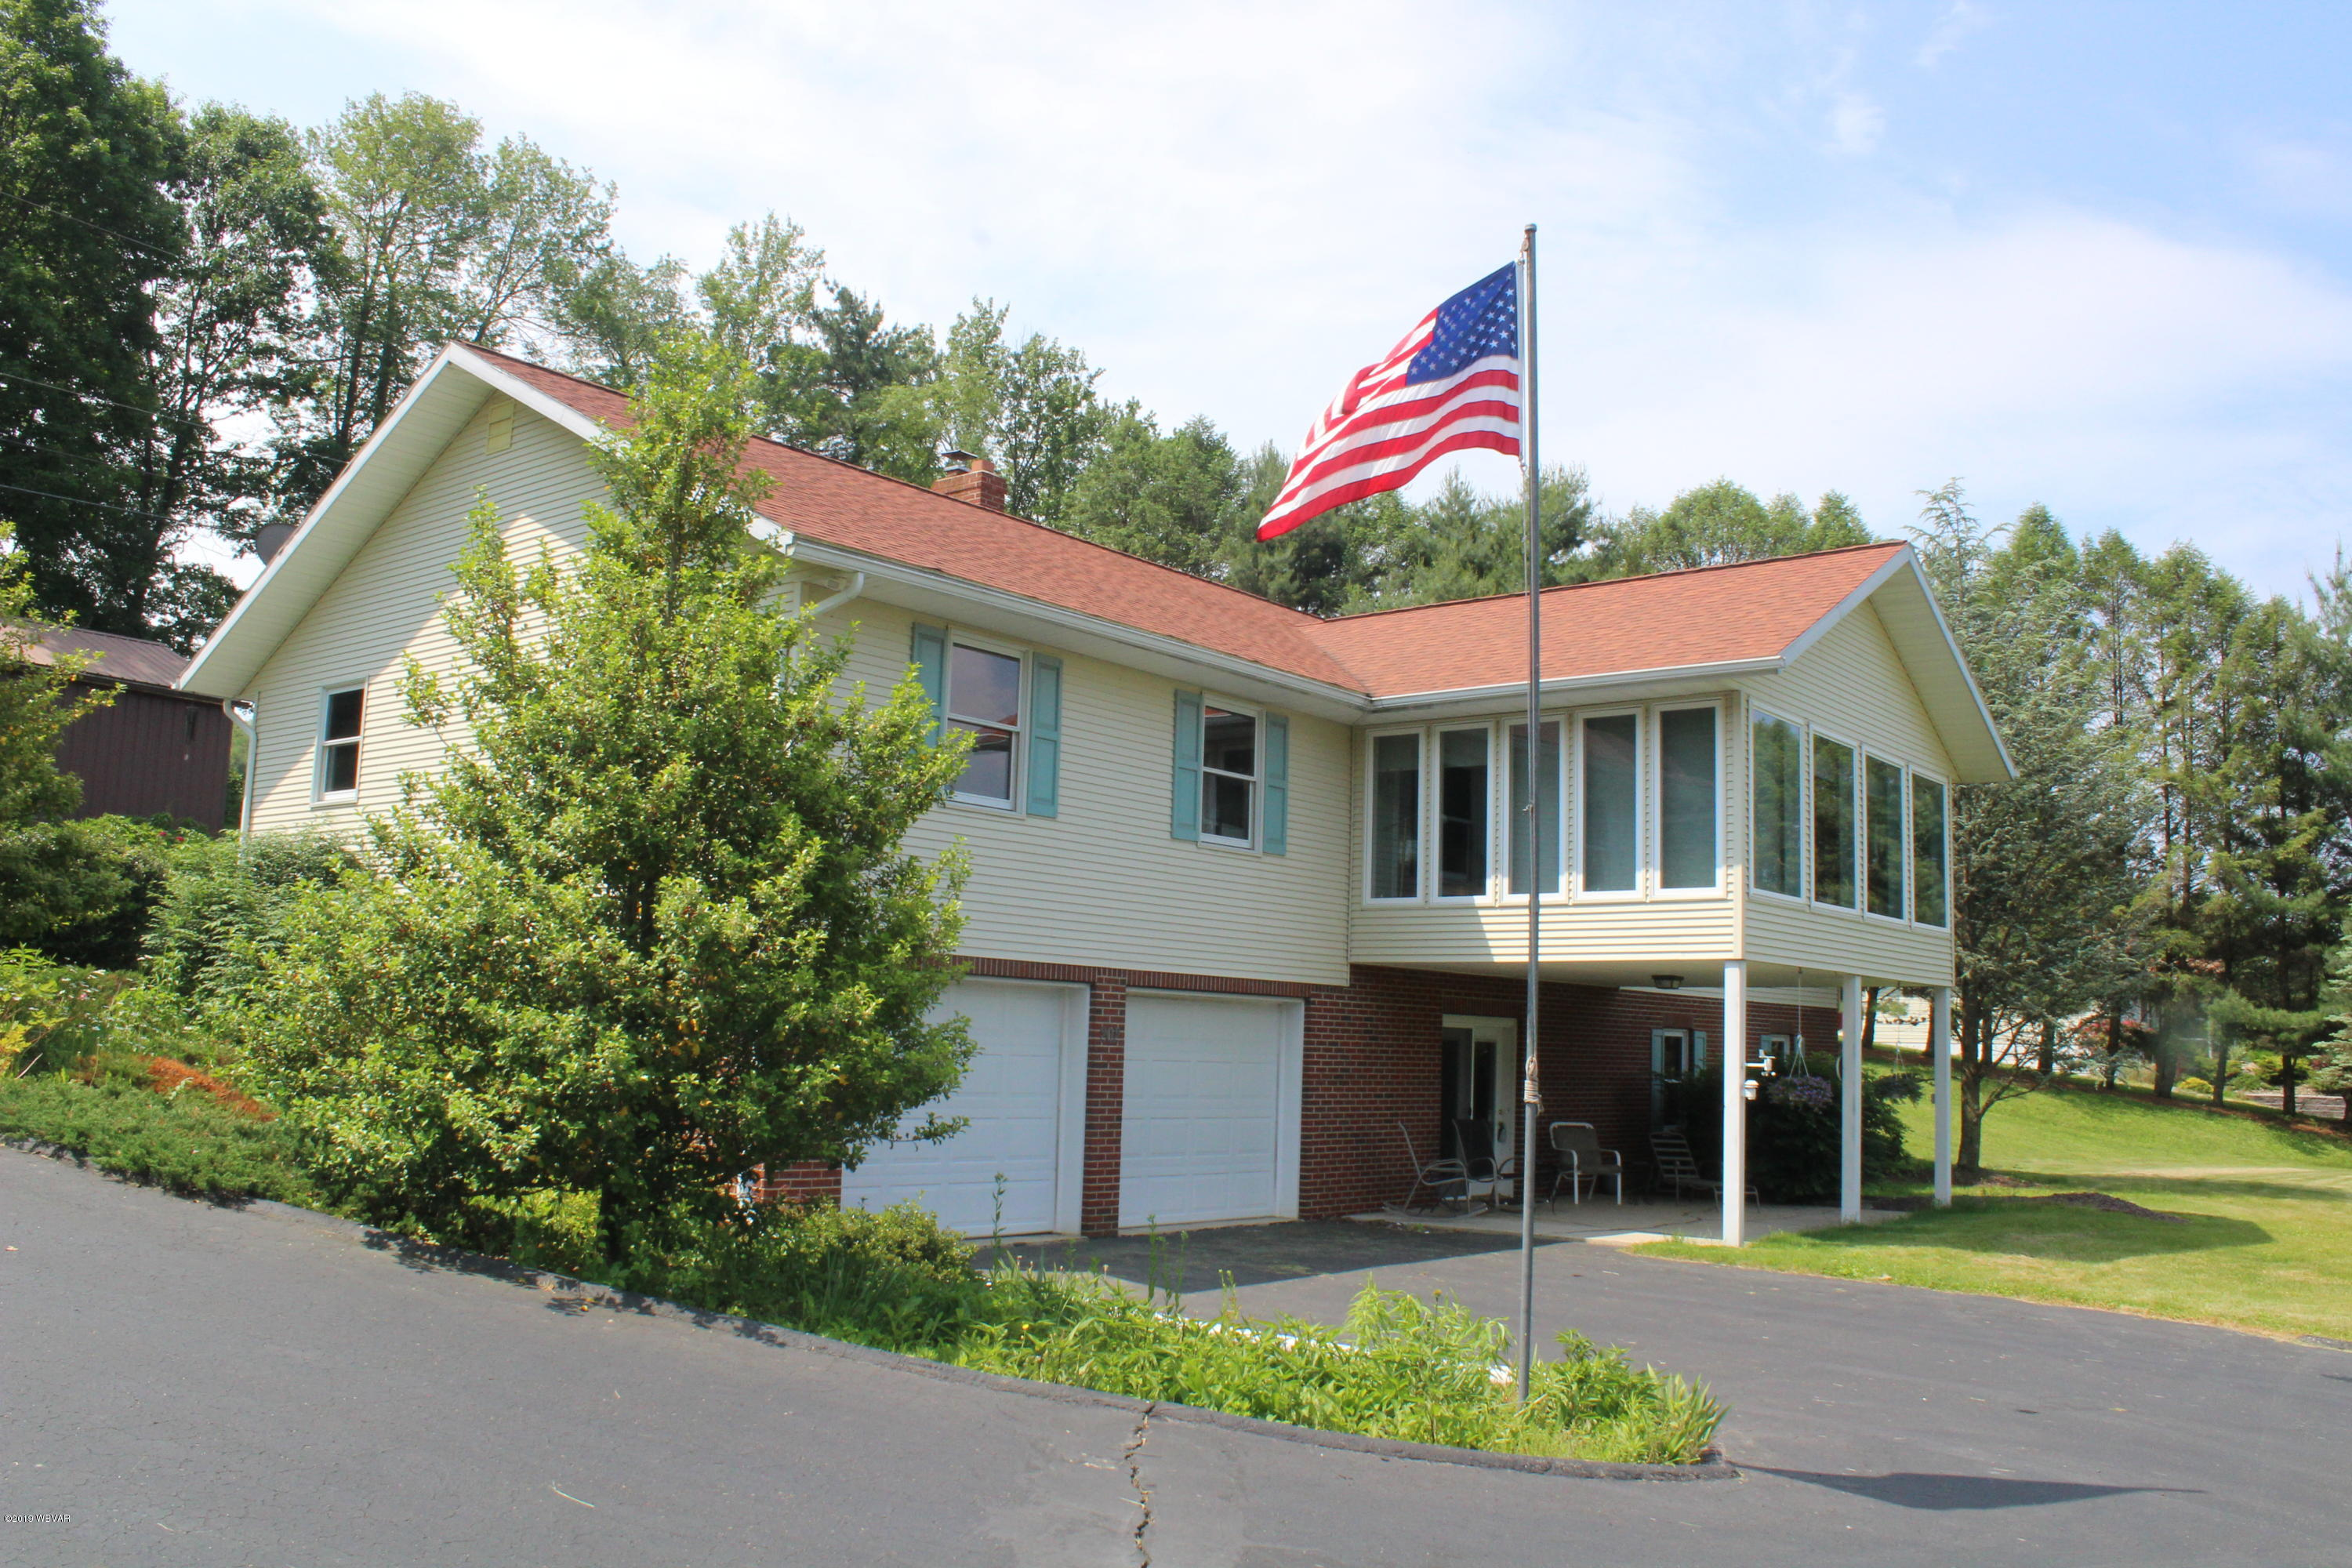 202 SHAW ROAD,Williamsport,PA 17701,3 Bedrooms Bedrooms,2 BathroomsBathrooms,Residential,SHAW,WB-87596